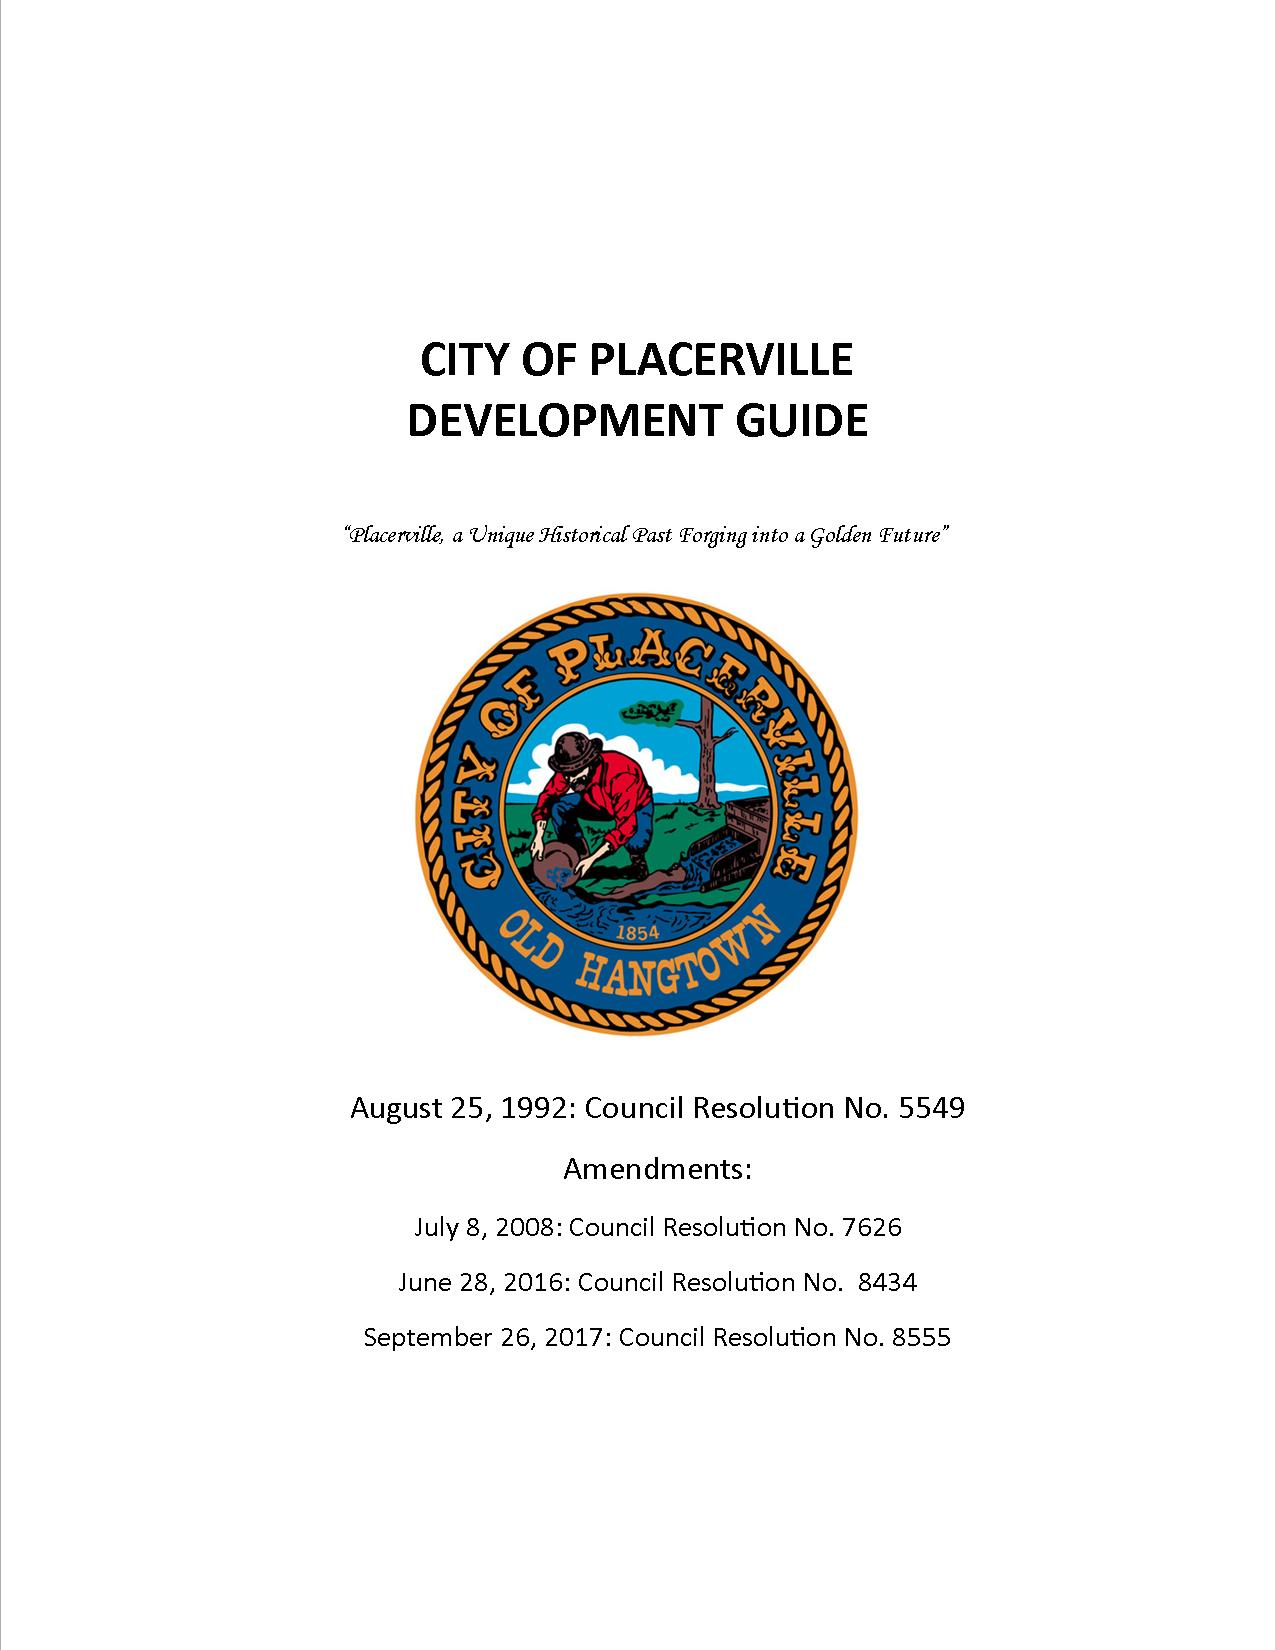 Development Guide 2016 Cover.jpg